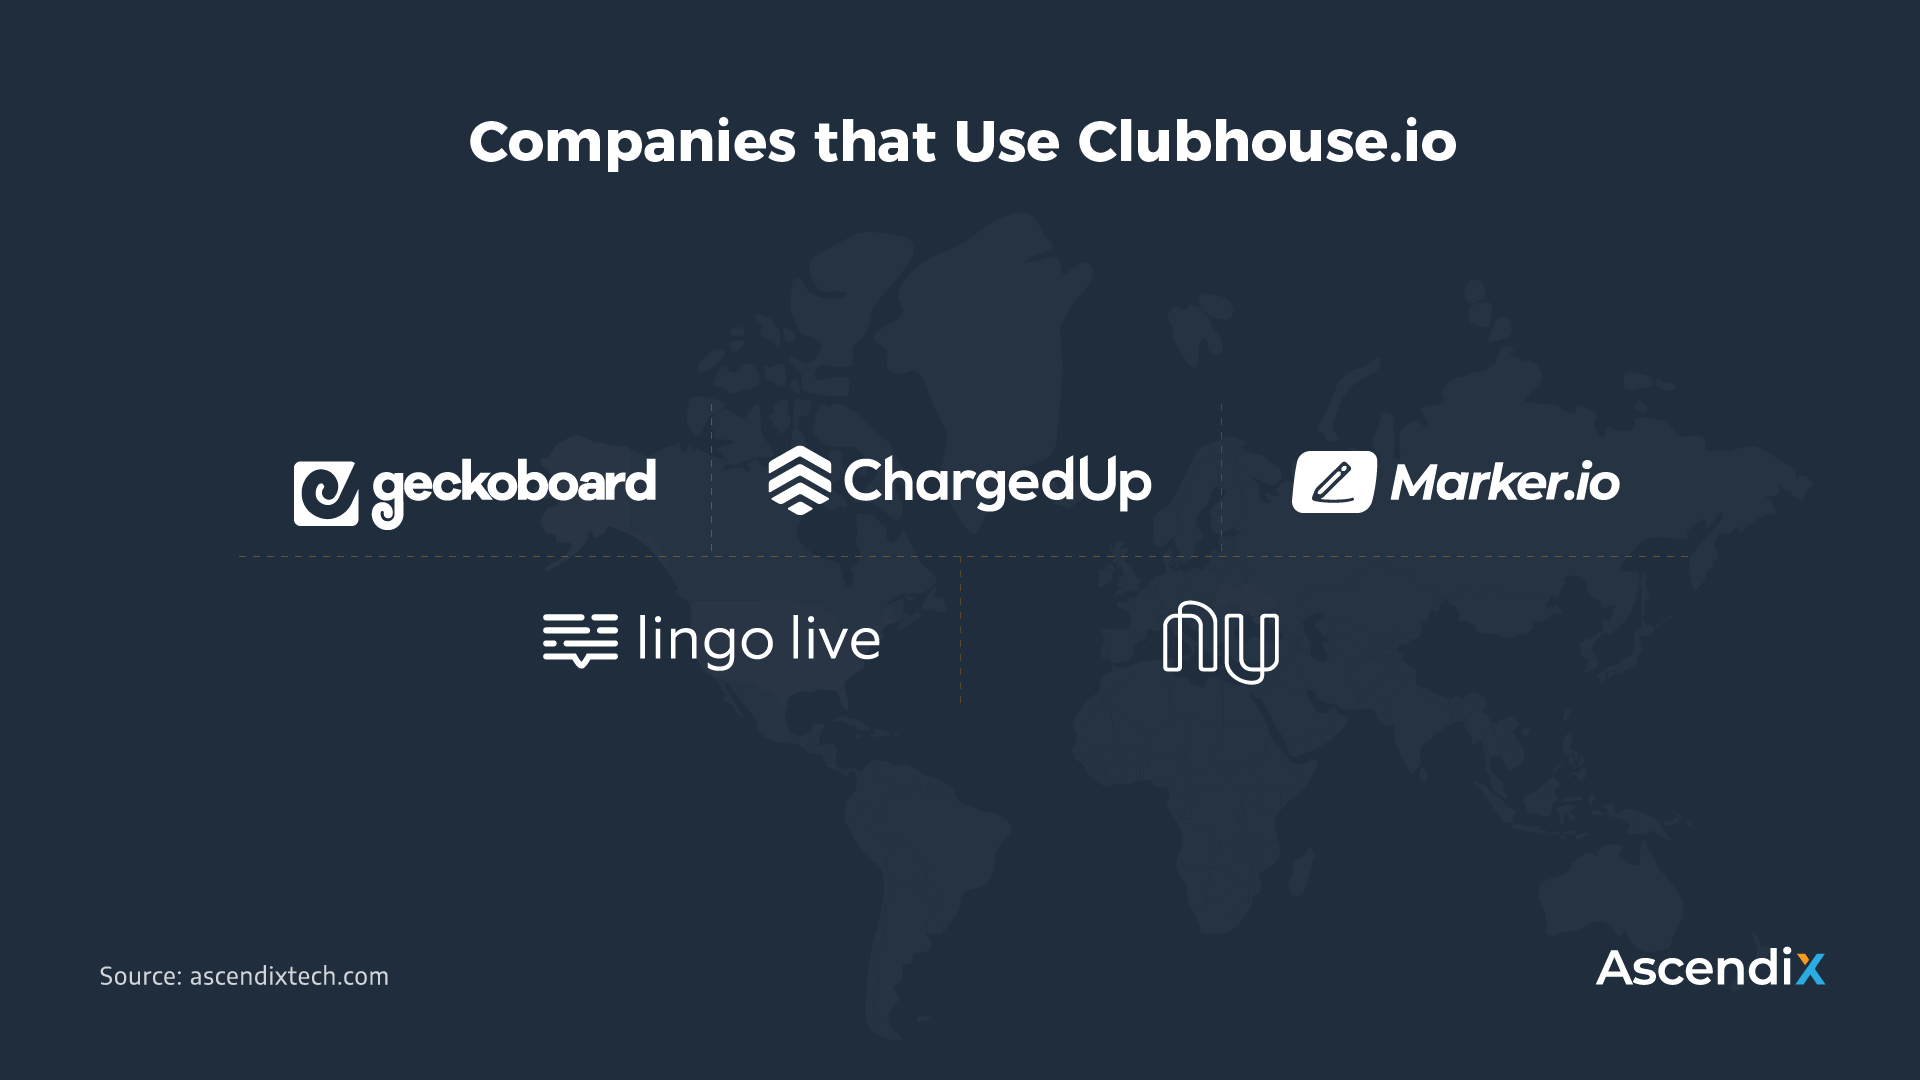 Companies that Use Clubhouse.io